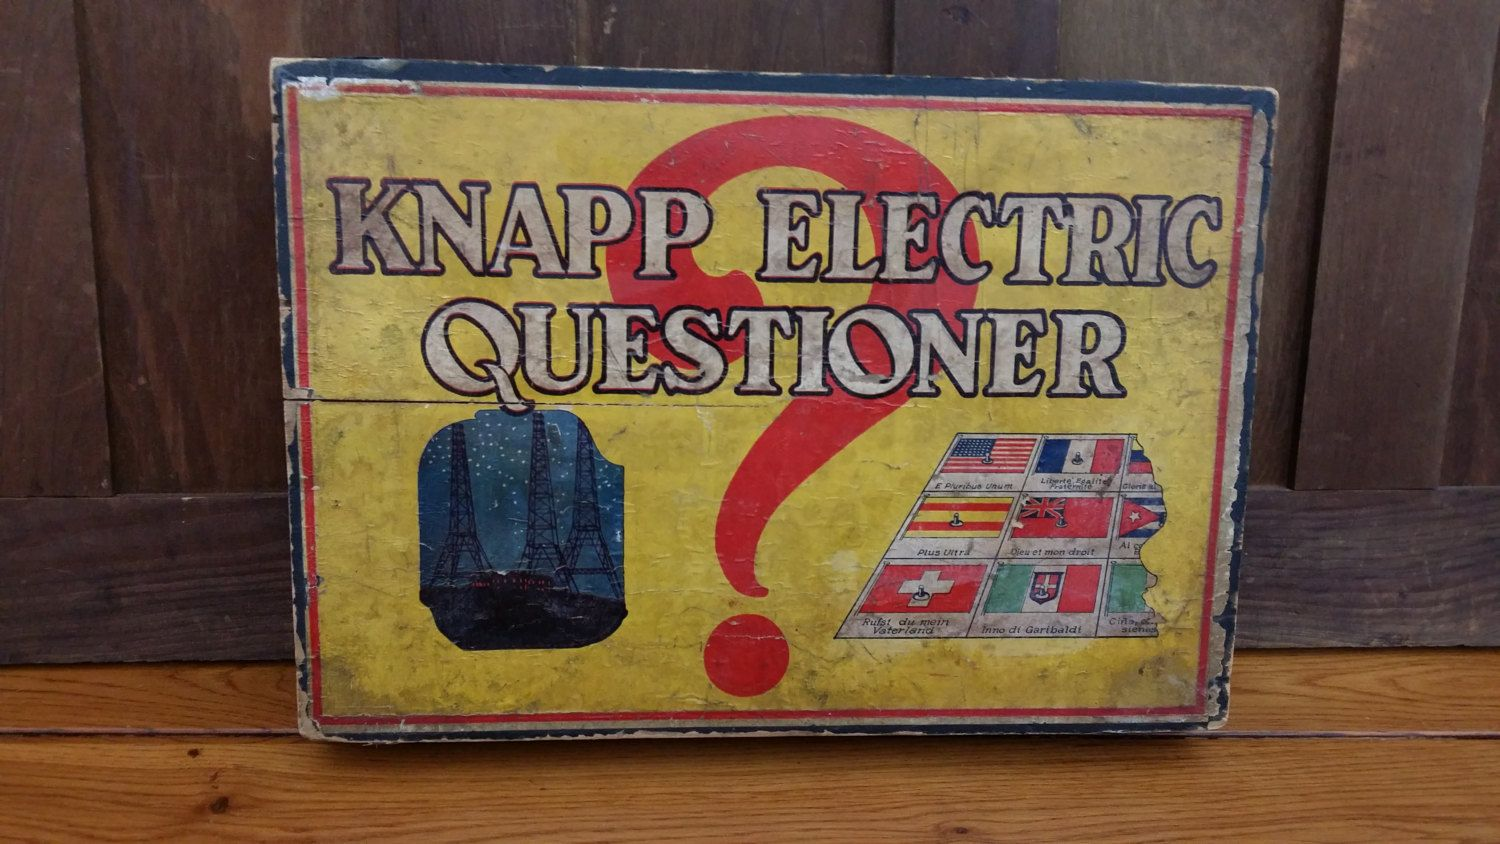 Knapp Electric Questioner Game With 13 Insert Quiz Cards By Maliasmark On Etsy Card Games For Kids Therapy Games Speech Therapy Games